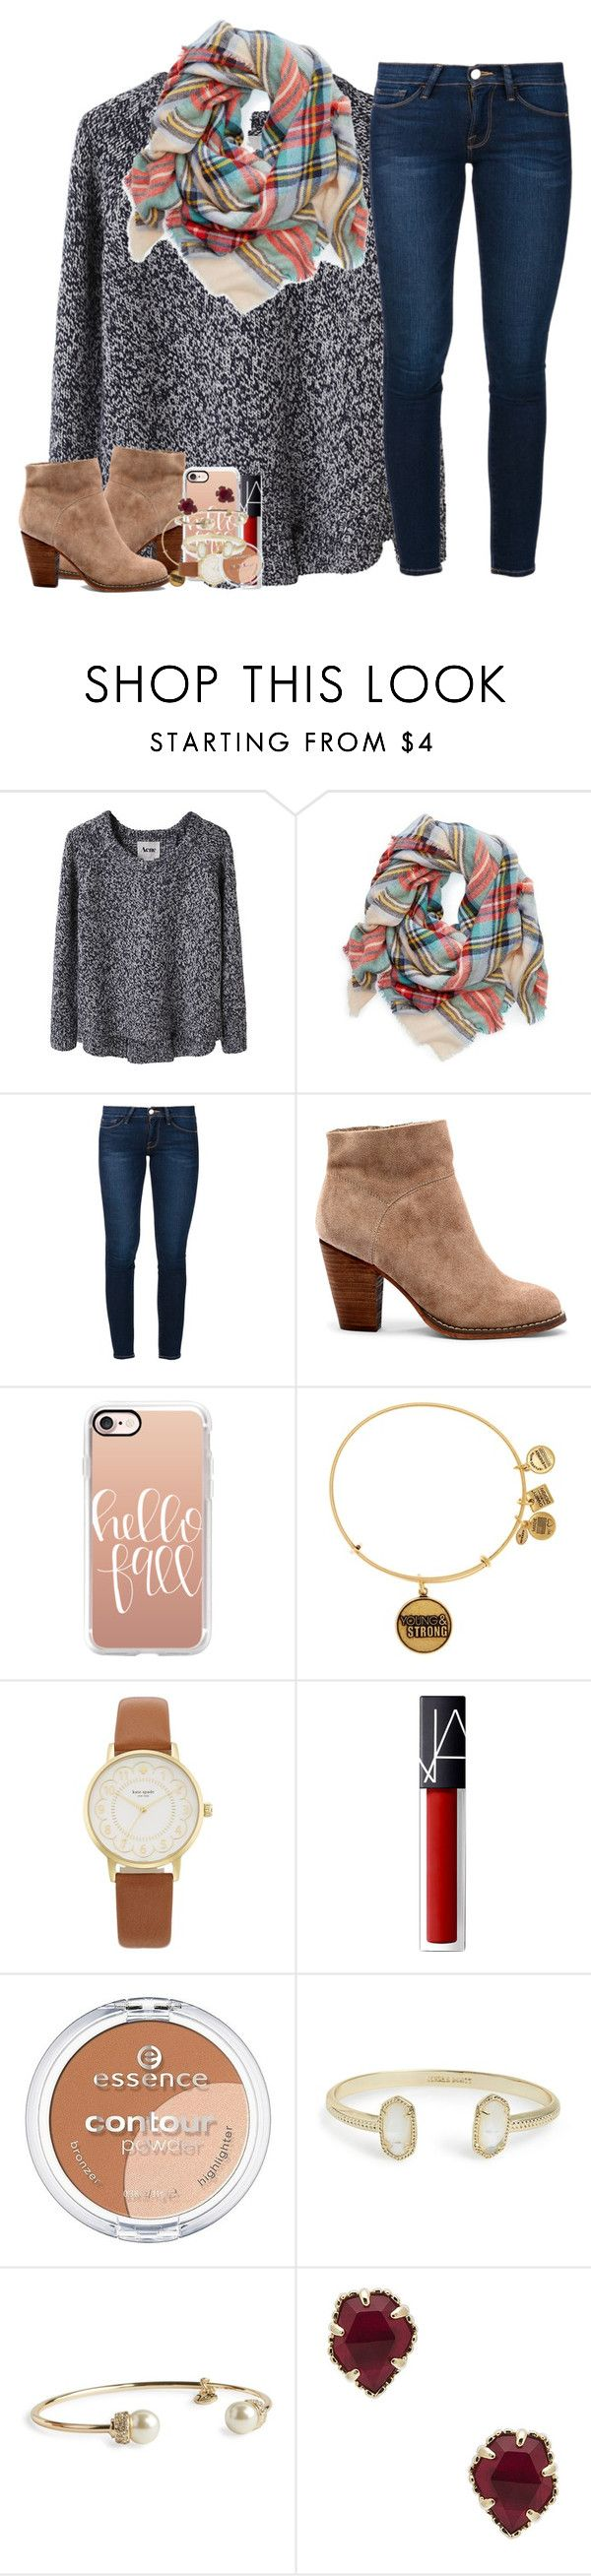 """{ i want you to be mine again, baby }"" by ellaswiftie13 ❤ liked on Polyvore featuring Acne Studios, Frame, Sole Society, Casetify, Alex and Ani, Kate Spade, NARS Cosmetics, Essence, Kendra Scott and Vera Bradley"